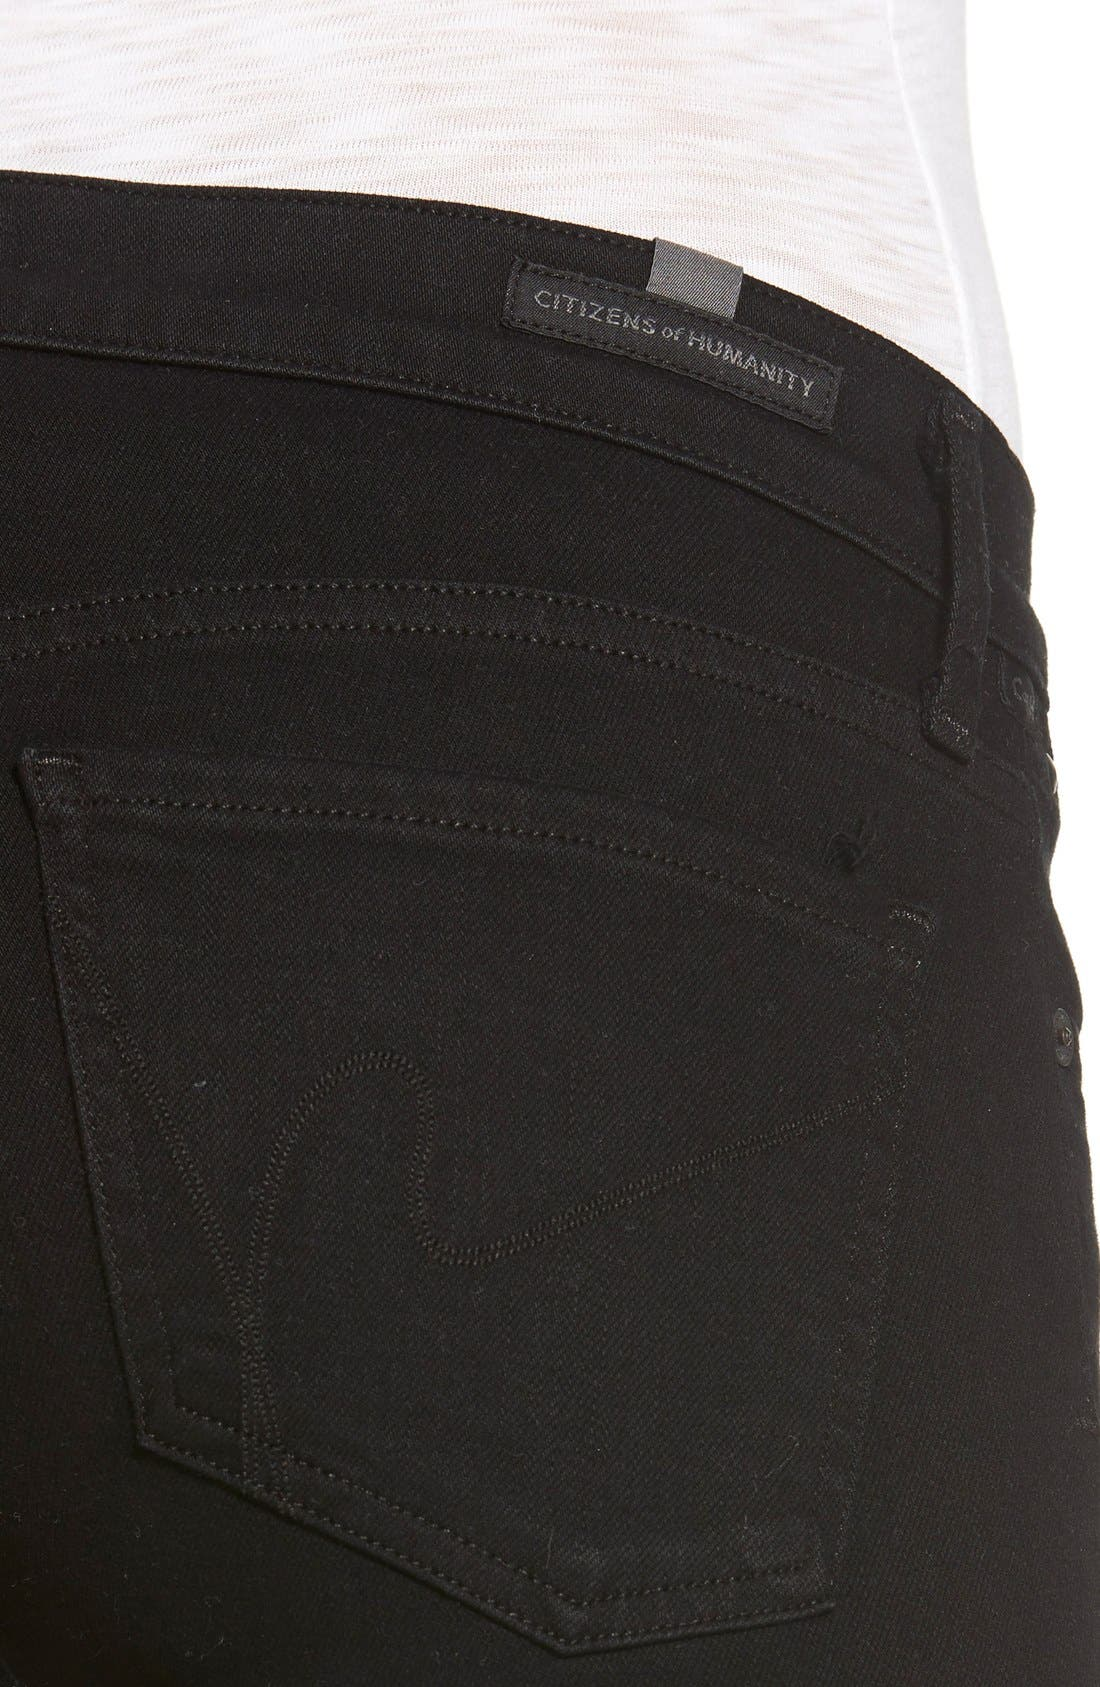 Alternate Image 4  - Citizens of Humanity 'Emmanuelle' Bootcut Jeans (Black)